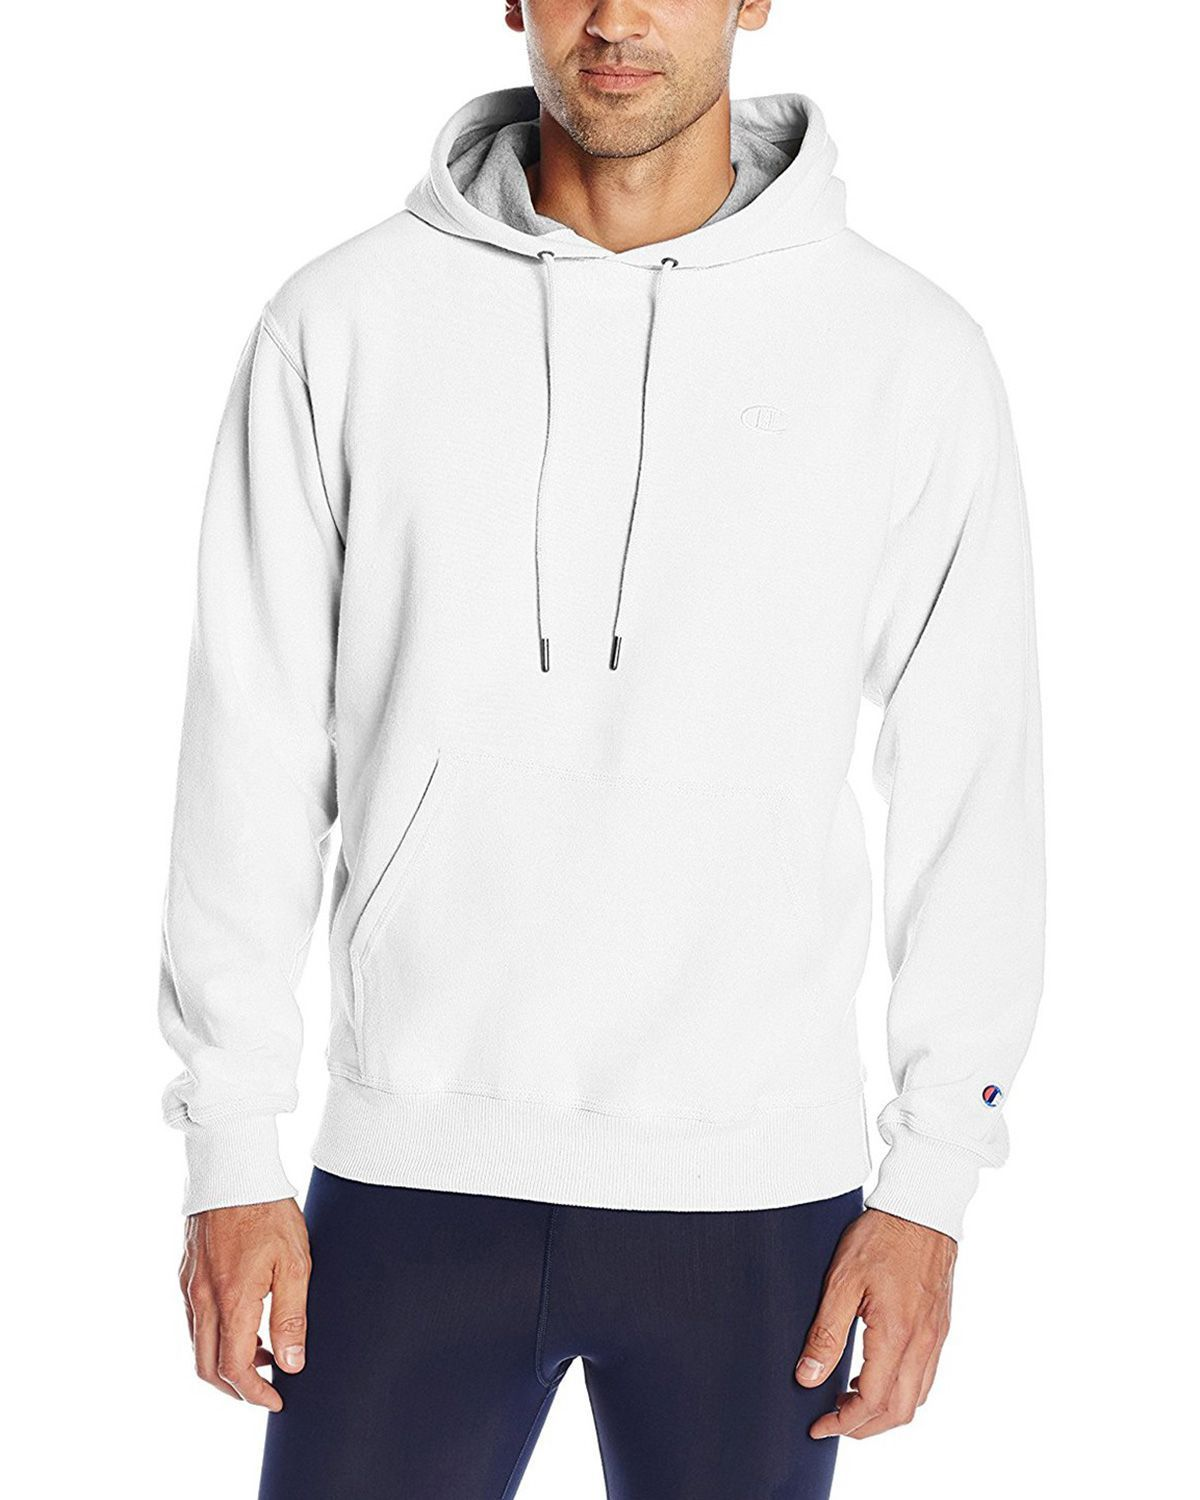 Champion S0889 Mens Fleece Pullover Hoodie - Navy - L S0889